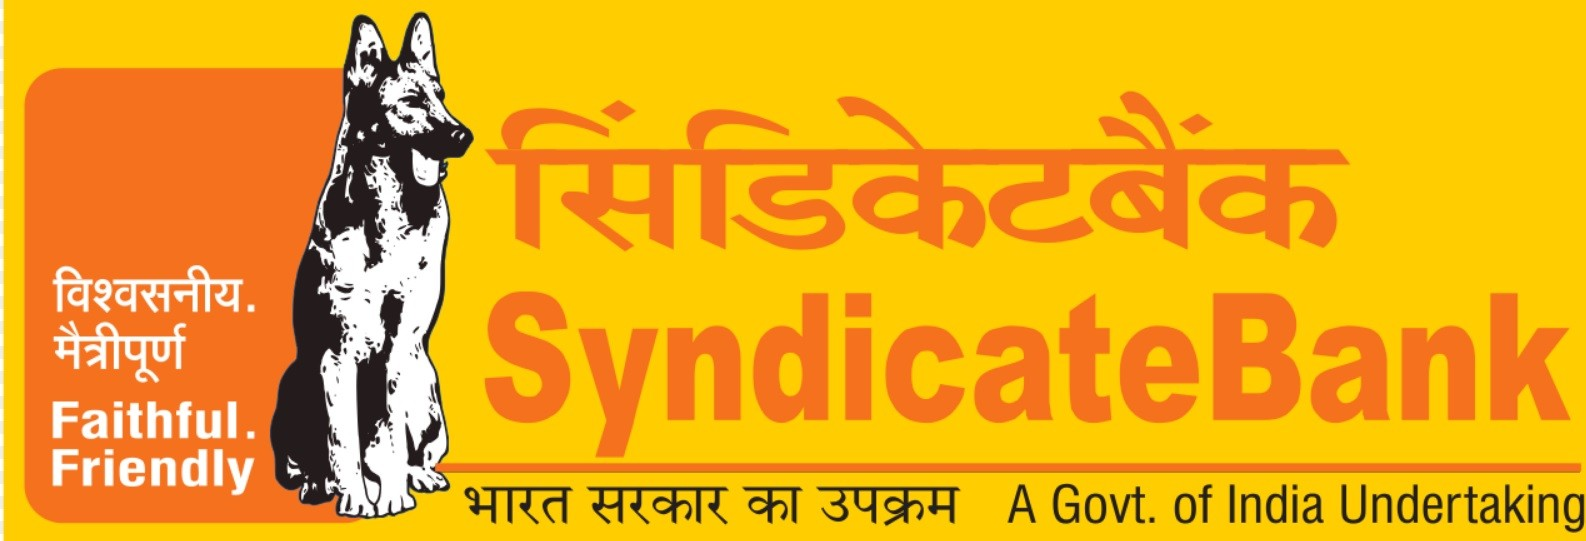 Owner of Syndicate Bank India -Wiki - Logo - profile